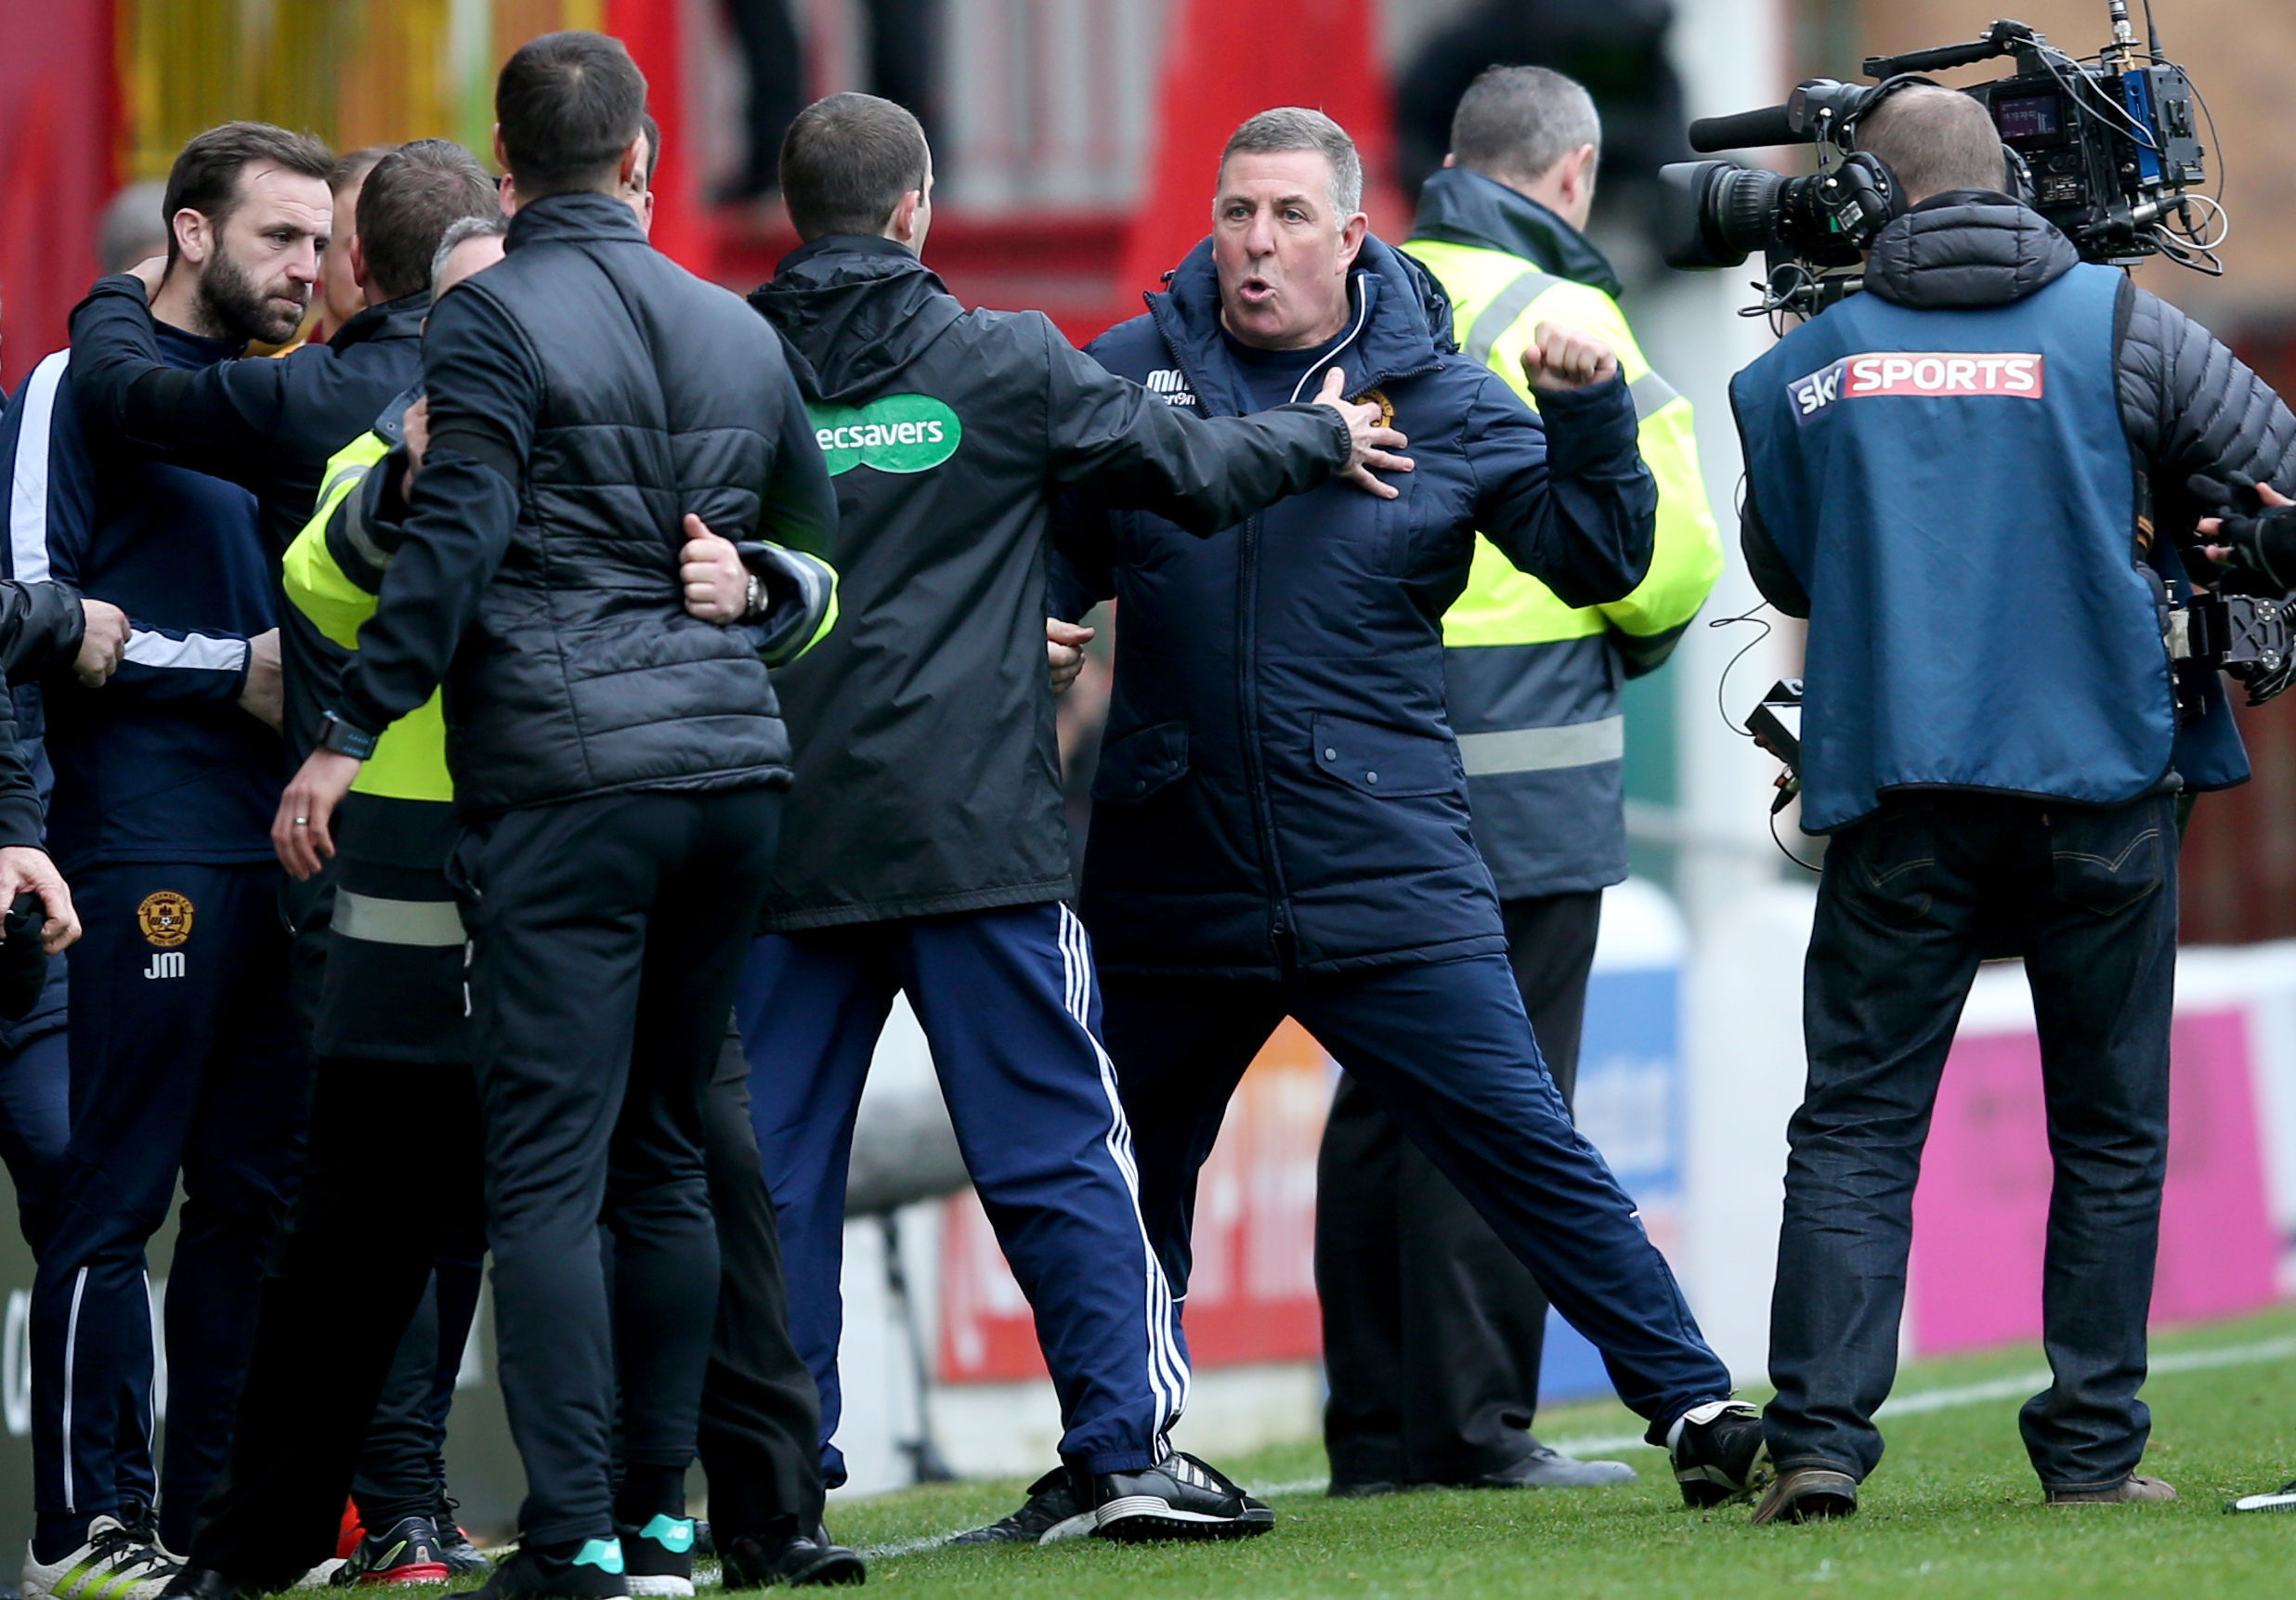 Motherwell manager Mark McGhee at the end of the  match at Fir Park (Jane Barlow/PA Wire)